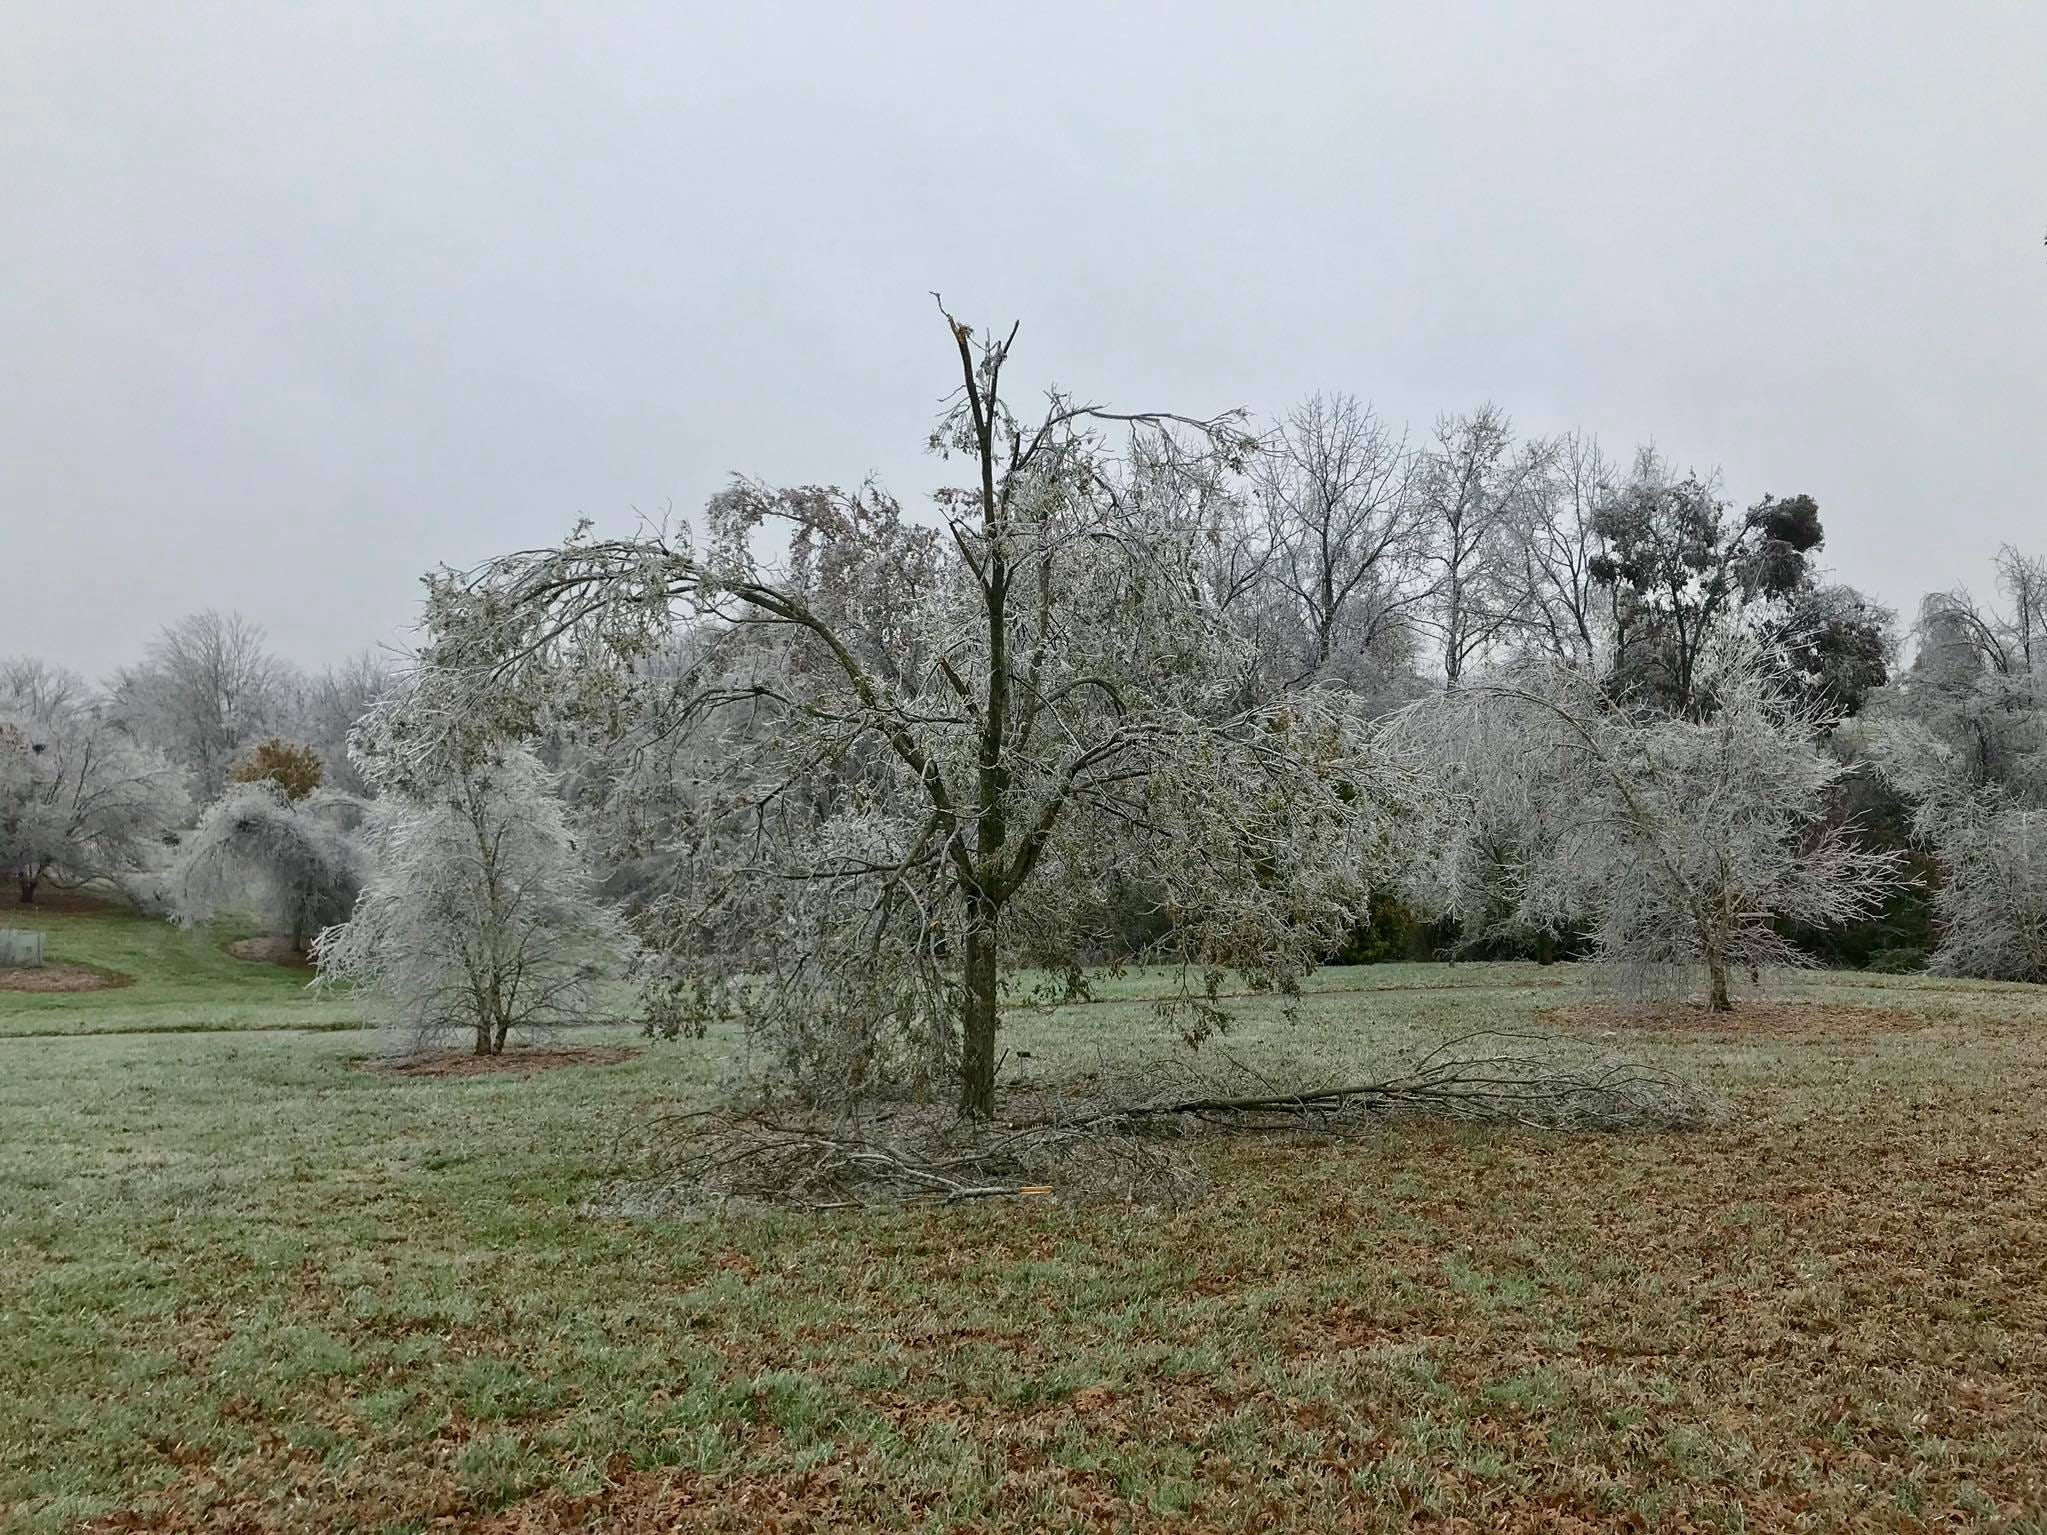 Thursday's ice storm damaged at least half of the trees at the Boone County Arboretum near Union, Kentucky.